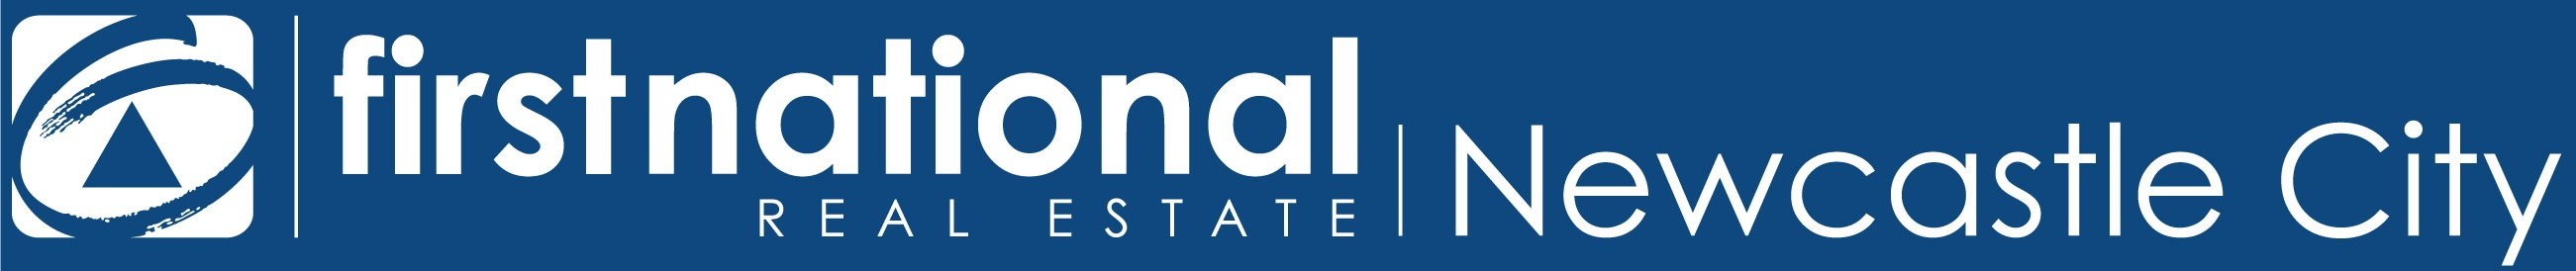 First National Real Estate Newcastle City